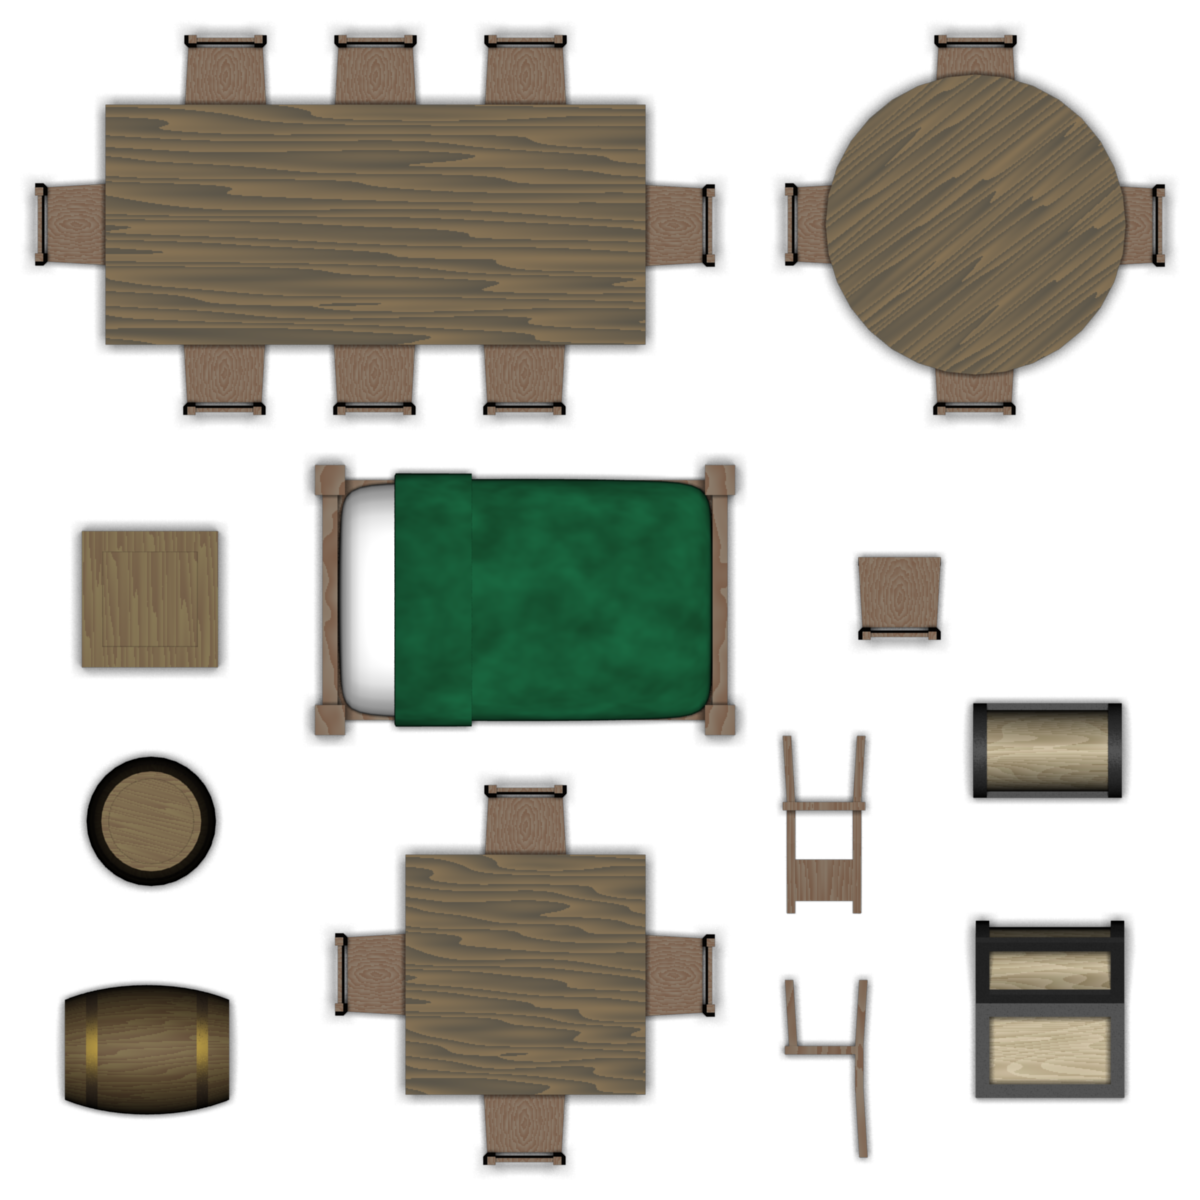 Dungeon Furniture Set by pfunked on DeviantArt : dungeonfurnituresetbypfunked from pfunked.deviantart.com size 1200 x 1200 png 560kB